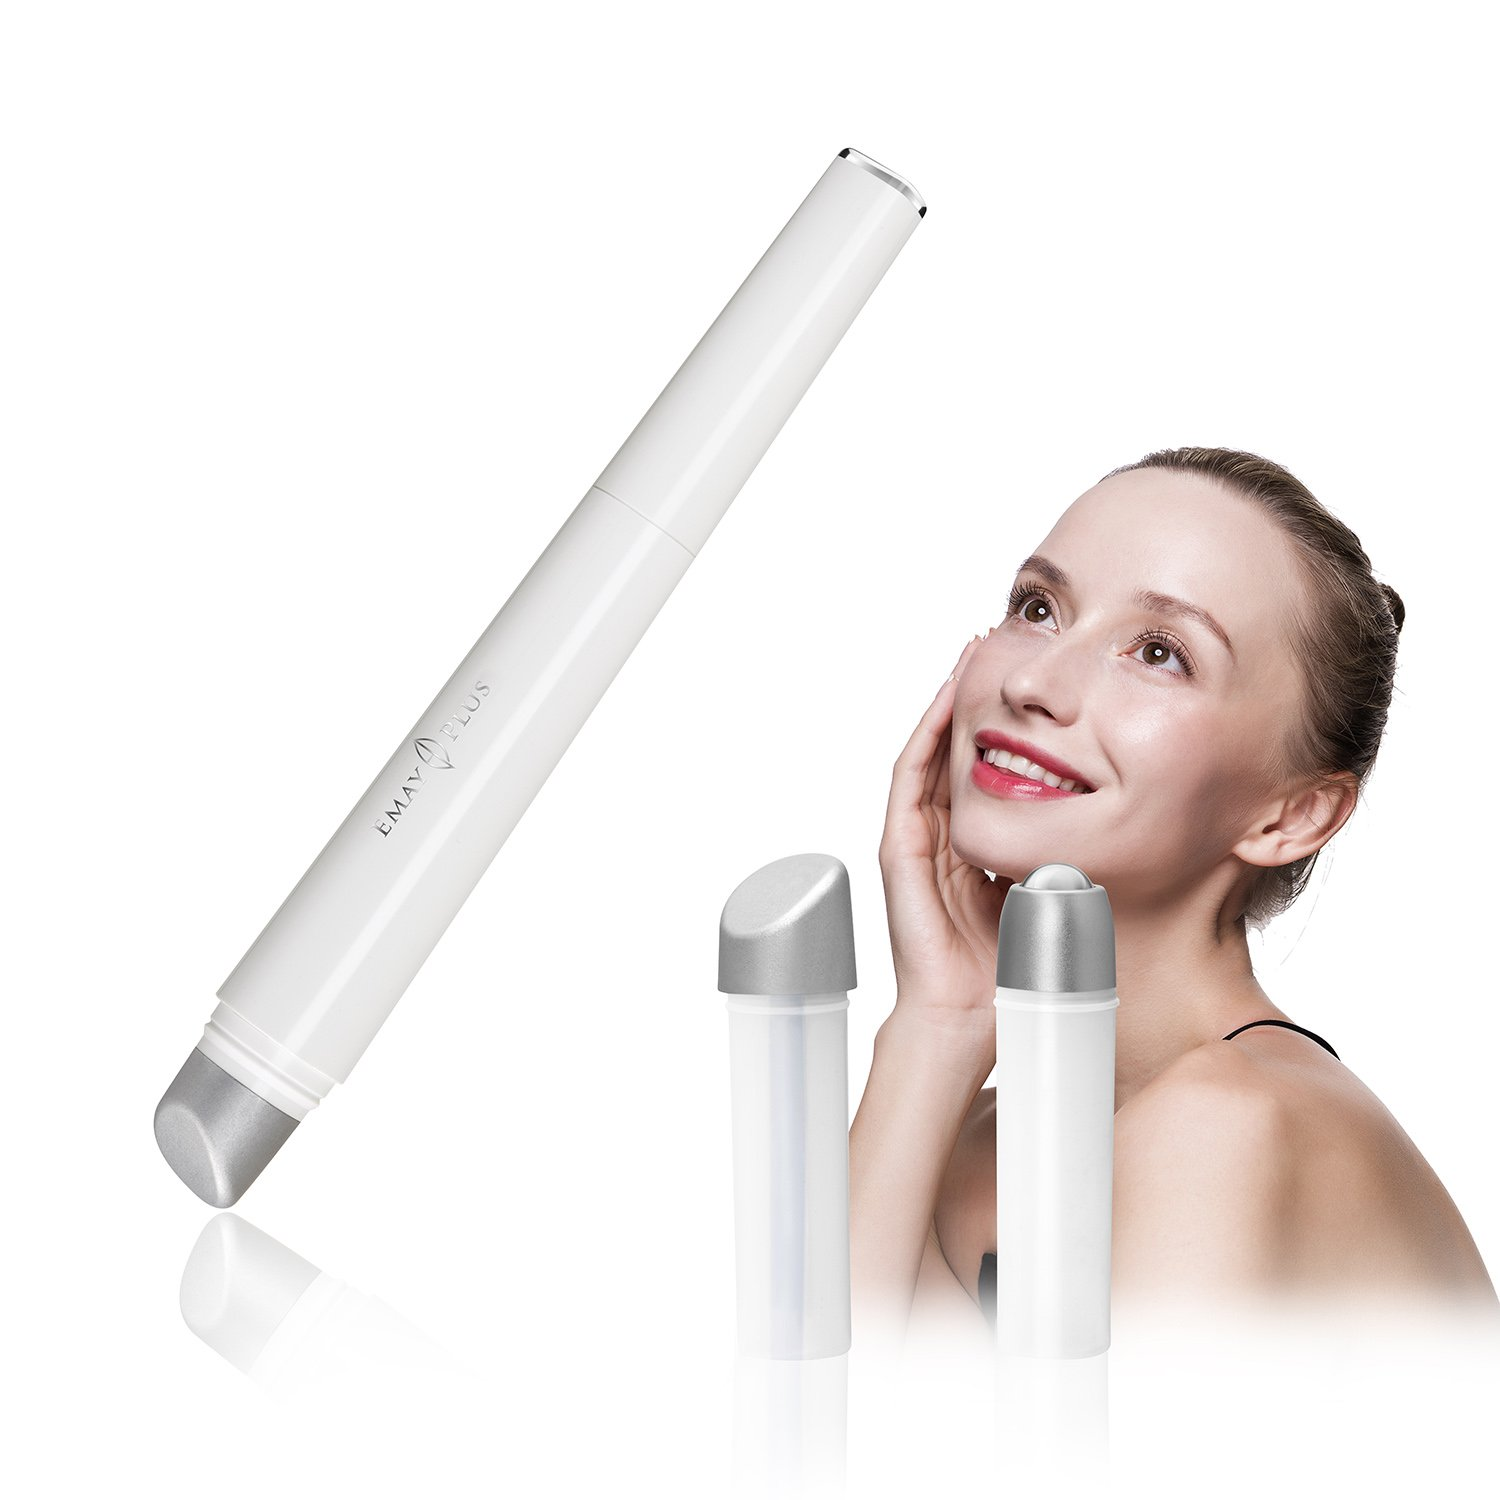 3-in-1 Eye and Facial Massager Wand.Cold compress,Heated Vibration and Roller Eye Massager Wand Anti-aging Device.